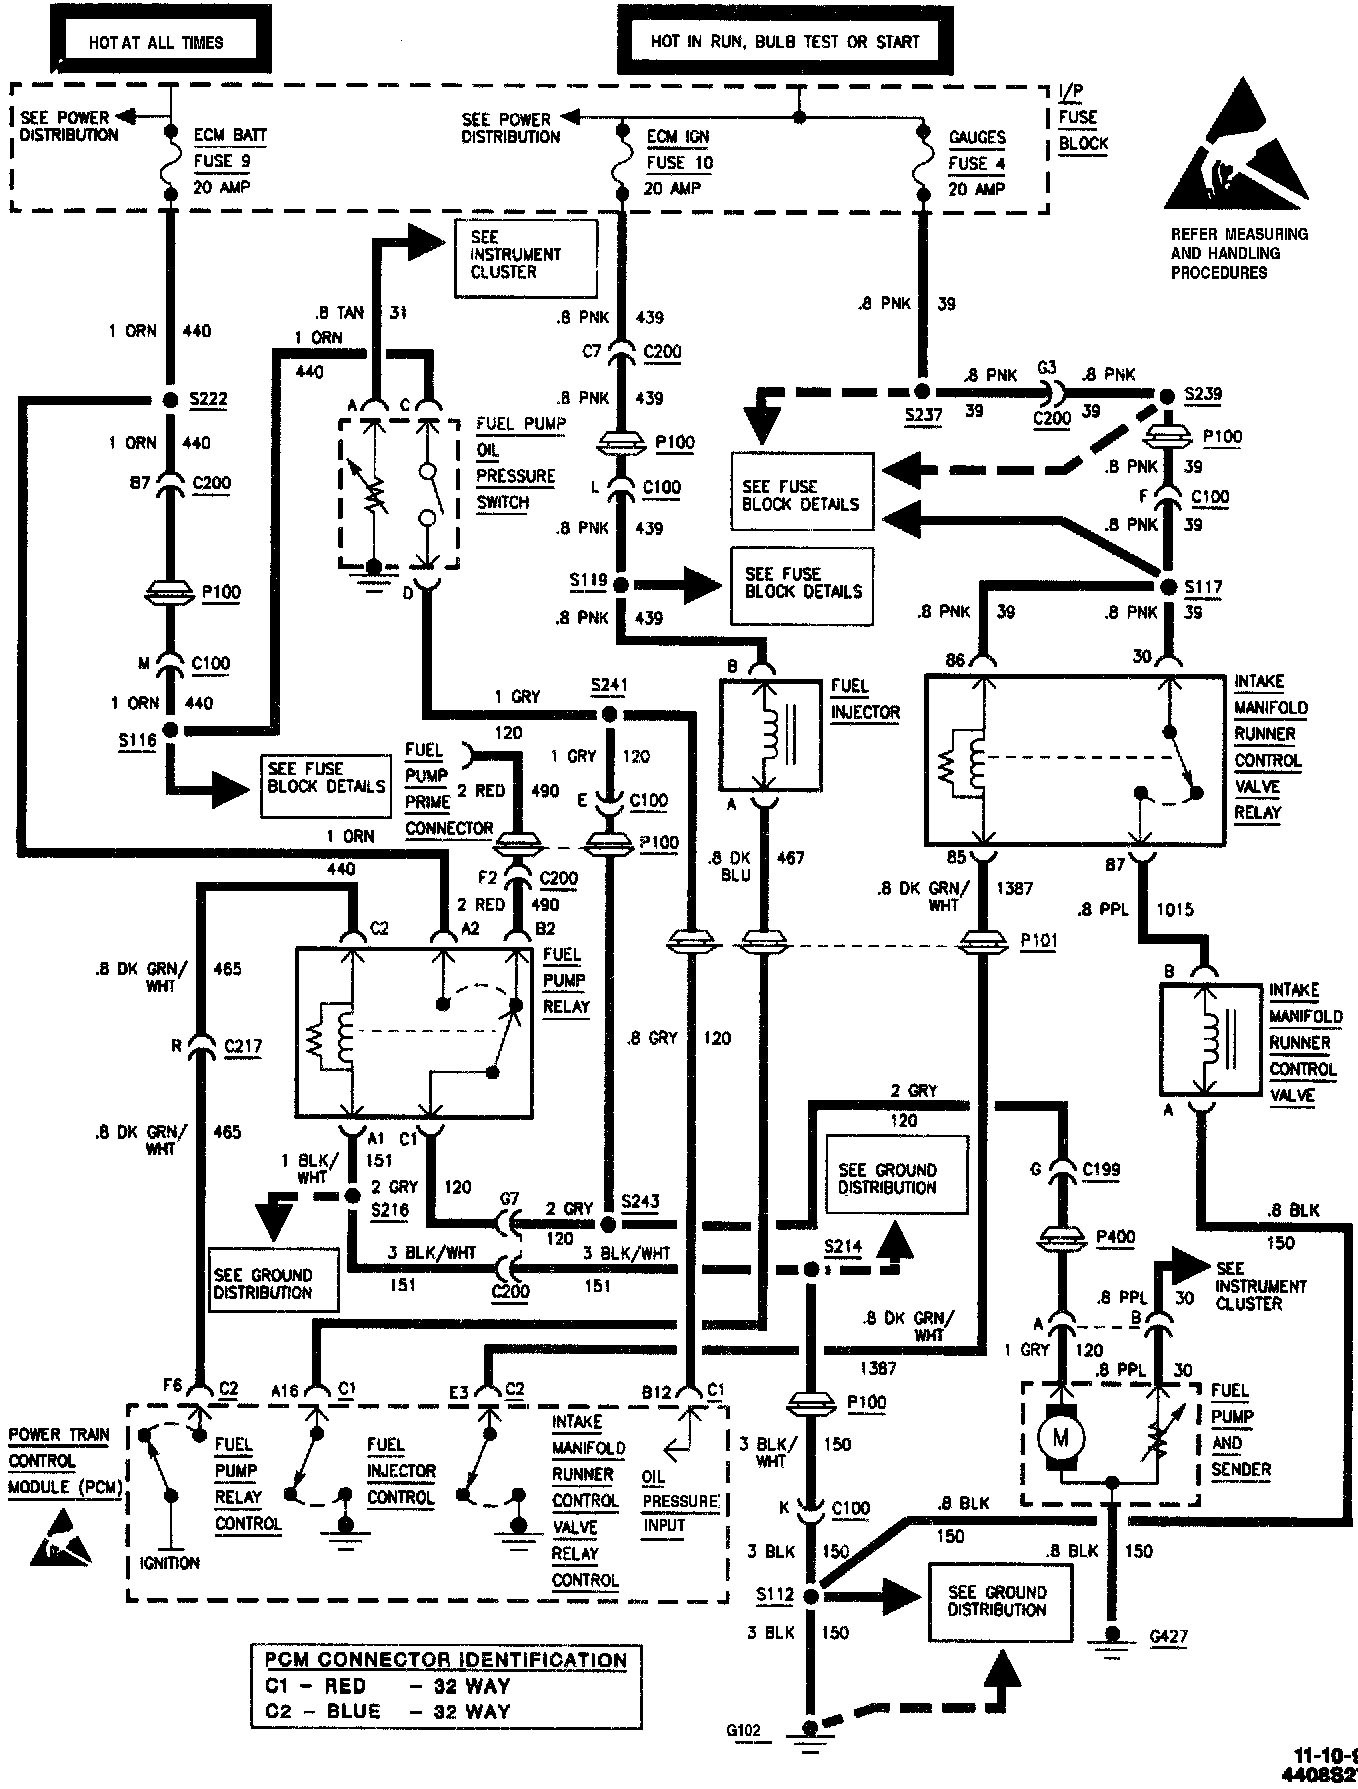 1995 Chevy 4x4 Wiring Diagram - All of Wiring Diagram